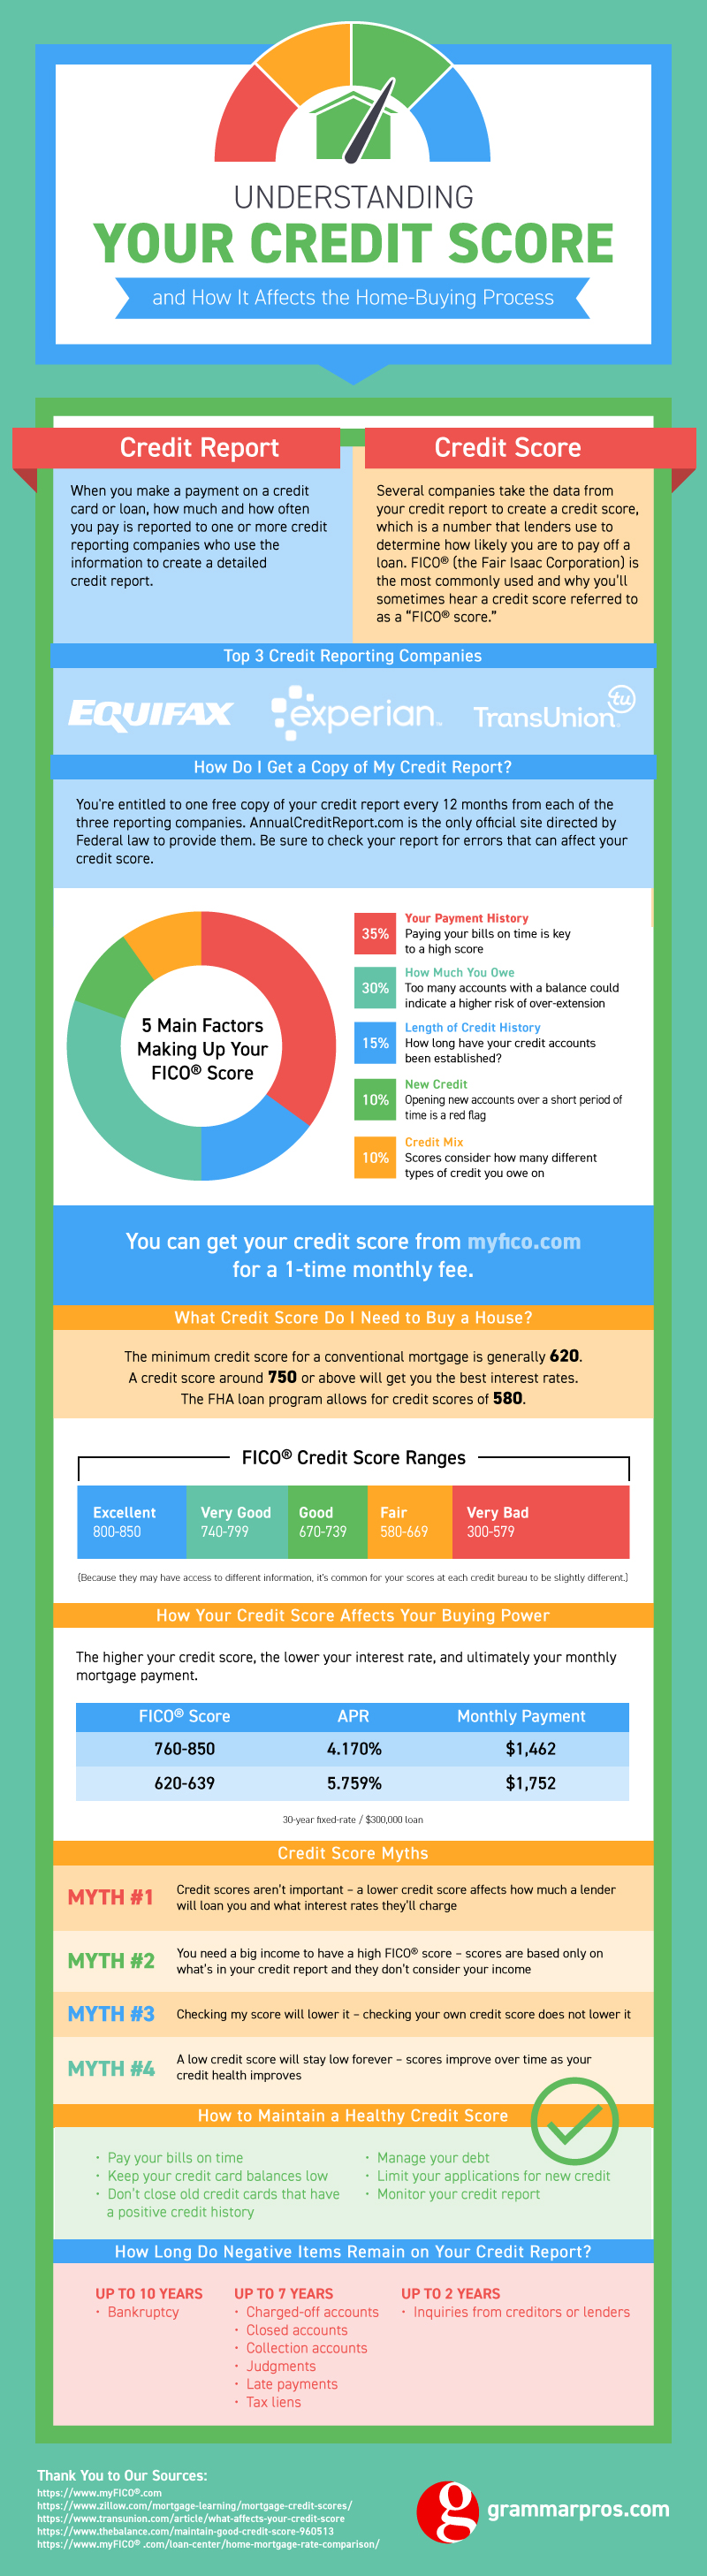 Understanding Your Credit Score Infographic